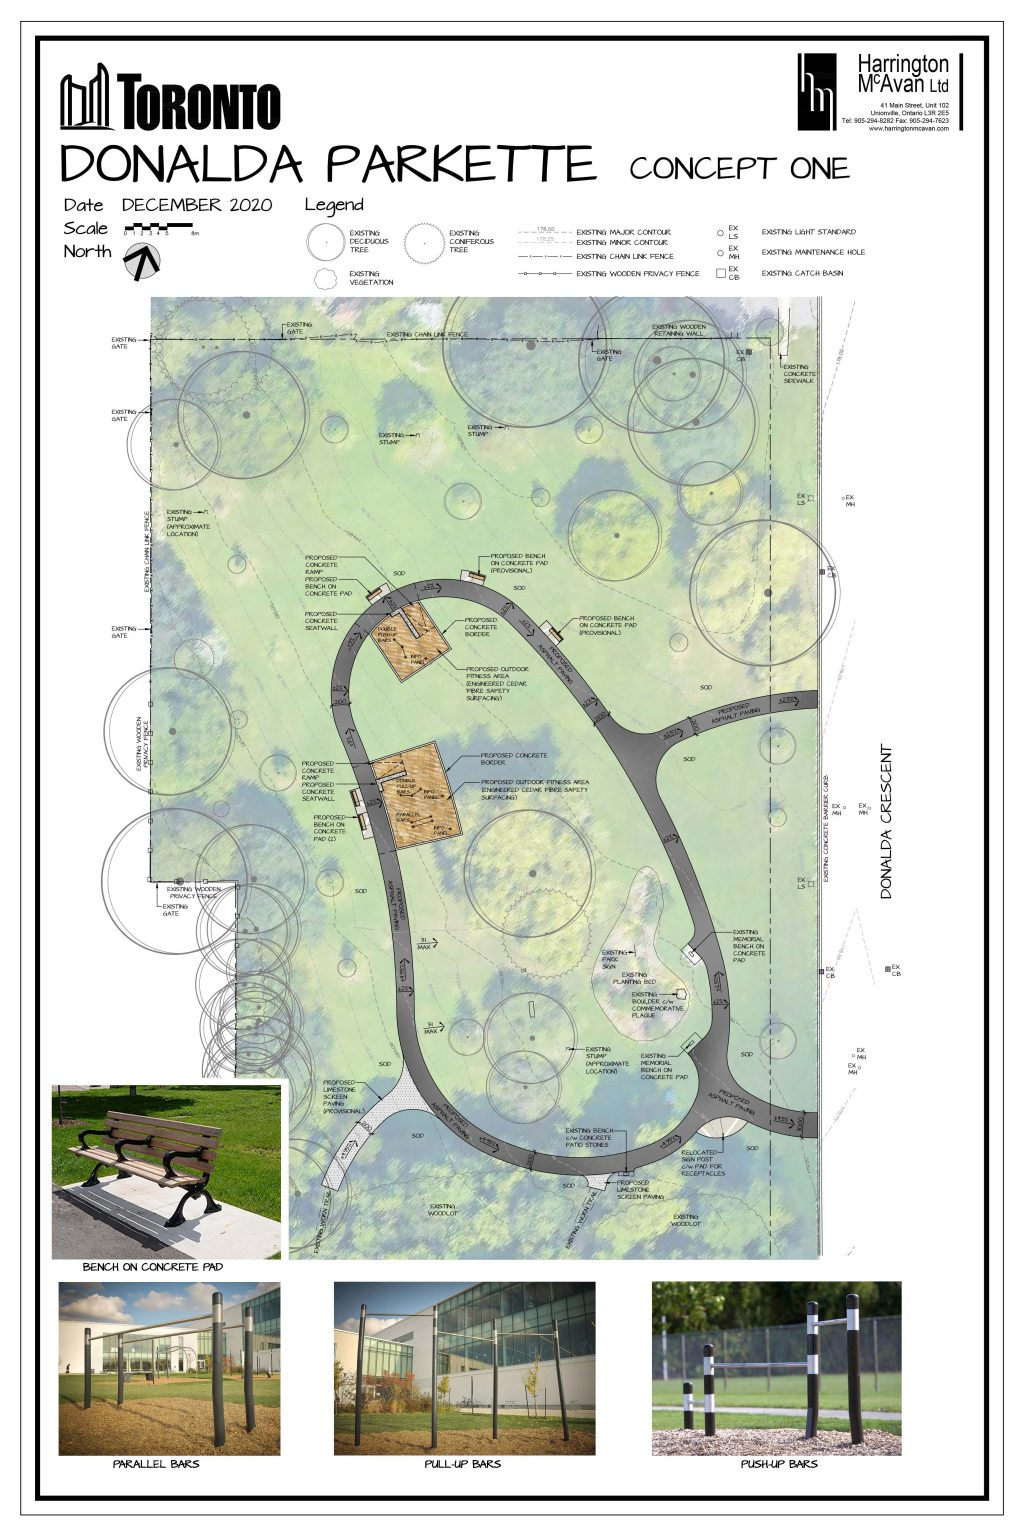 An image of the design plan for the option 1 fitness circuit for Donalda Park. This option feature an asphalt trail loop in the open lawn area of the park, and additional seating. The asphalt multi-use trail is an organic shape in the open lawn area of the park. The plan also includes two separate outdoor fitness stations with Engineered Wood Fibre surface and a bench on a concrete pad. The image also illustrates the existing plantings and trees in the park and surrounding wooded area. The image includes renderings of the proposed fitness equipment, which includes parallel bars, pull-up bars and push up bar.